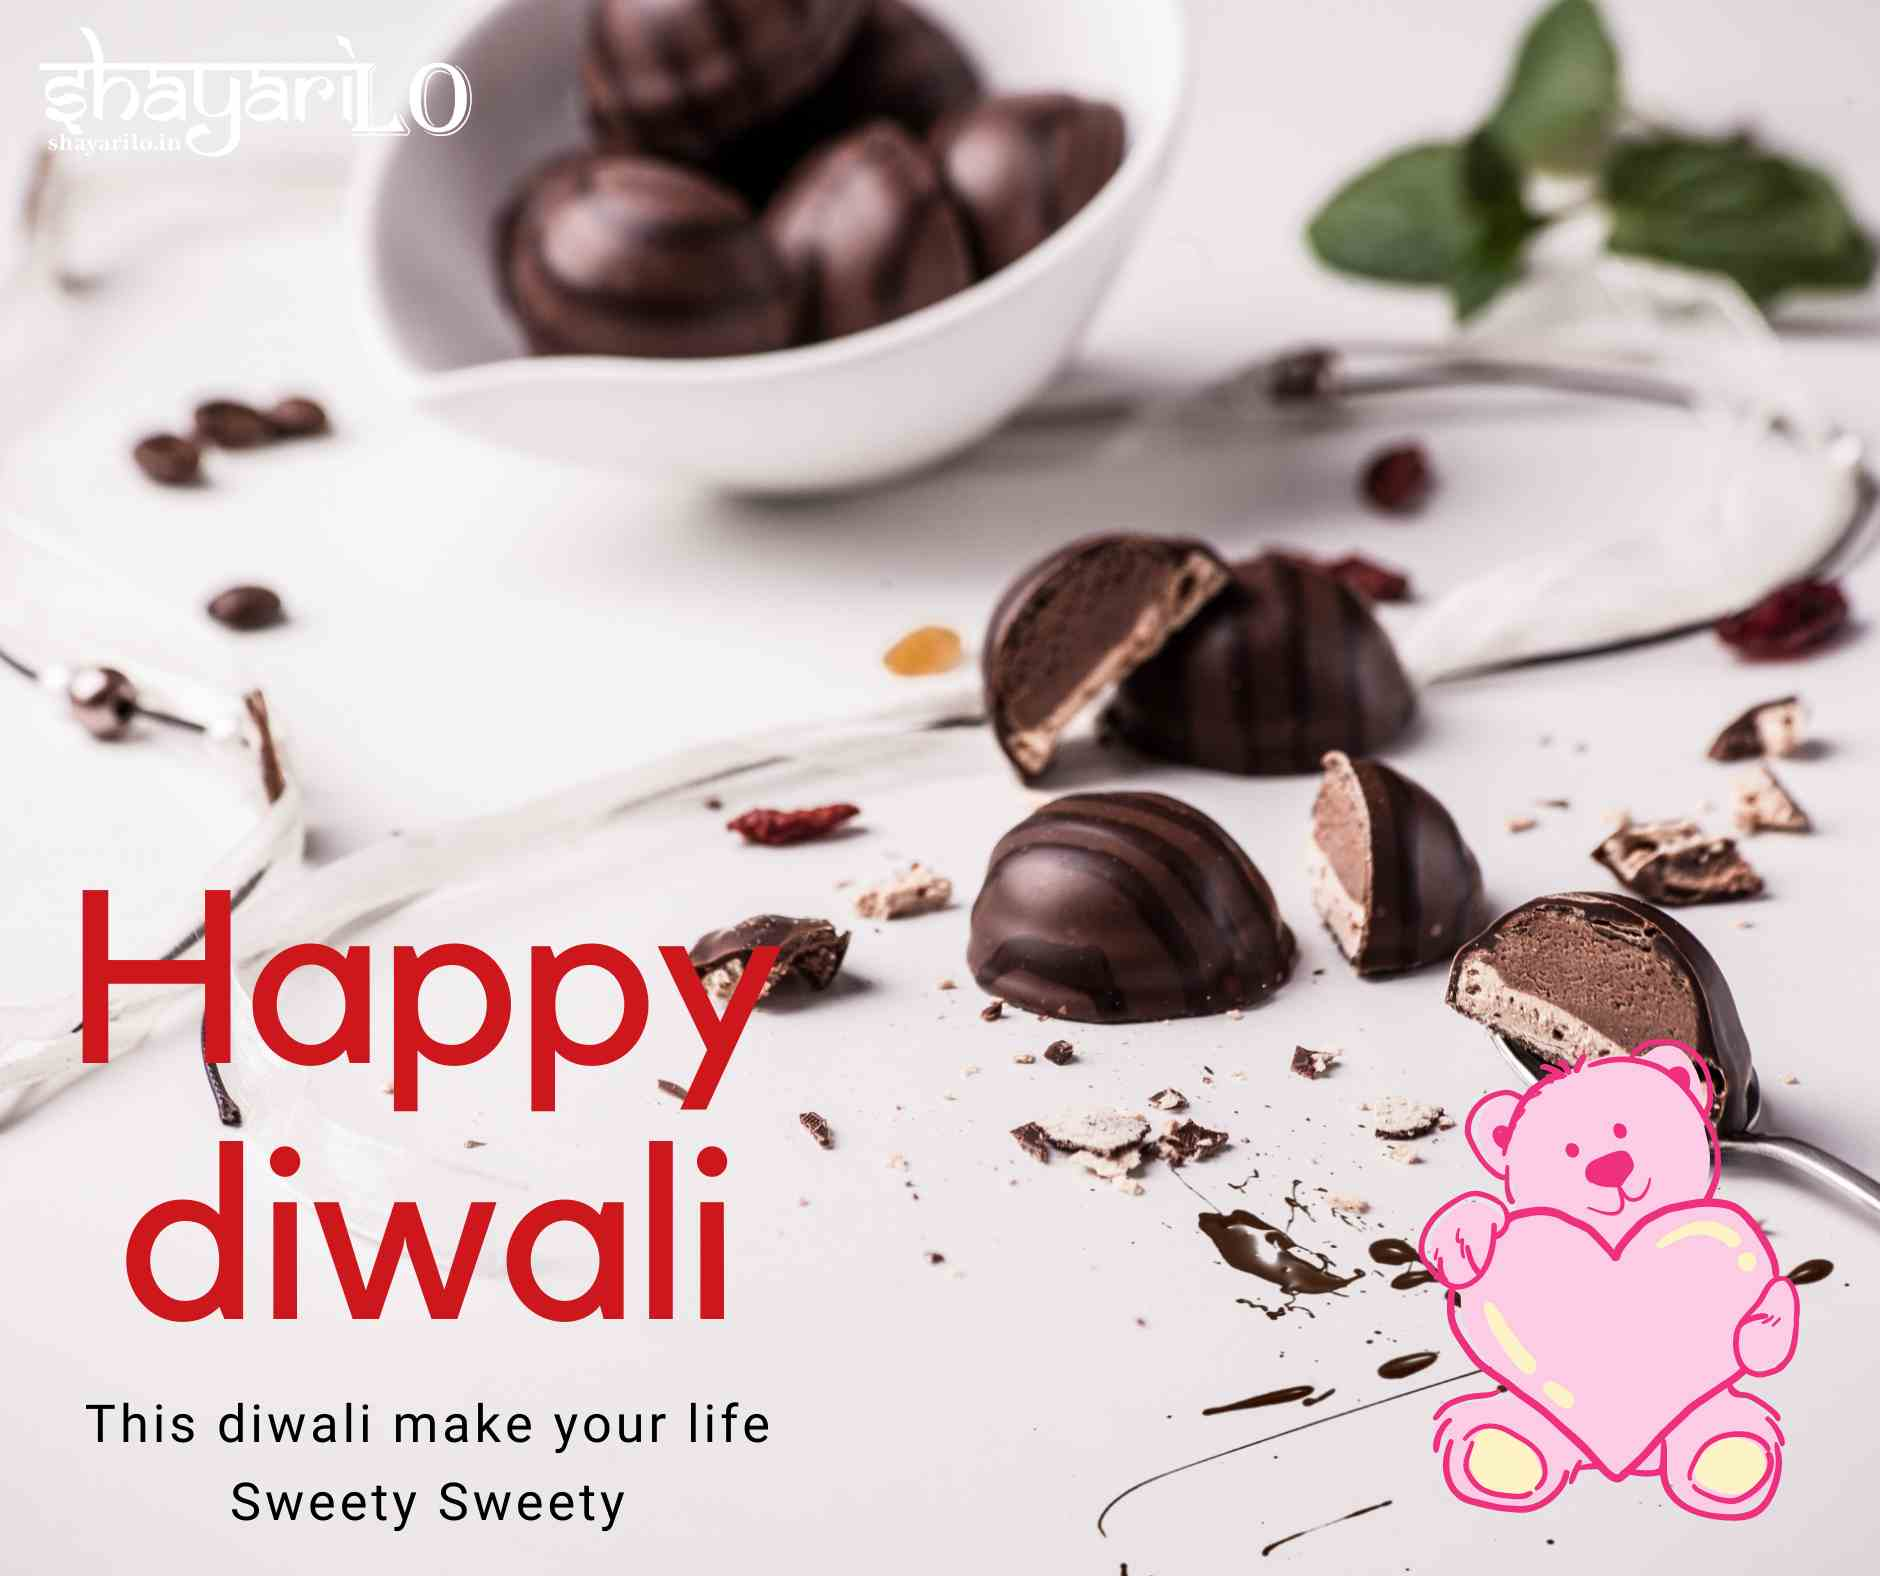 Diwali wishes greetings and image